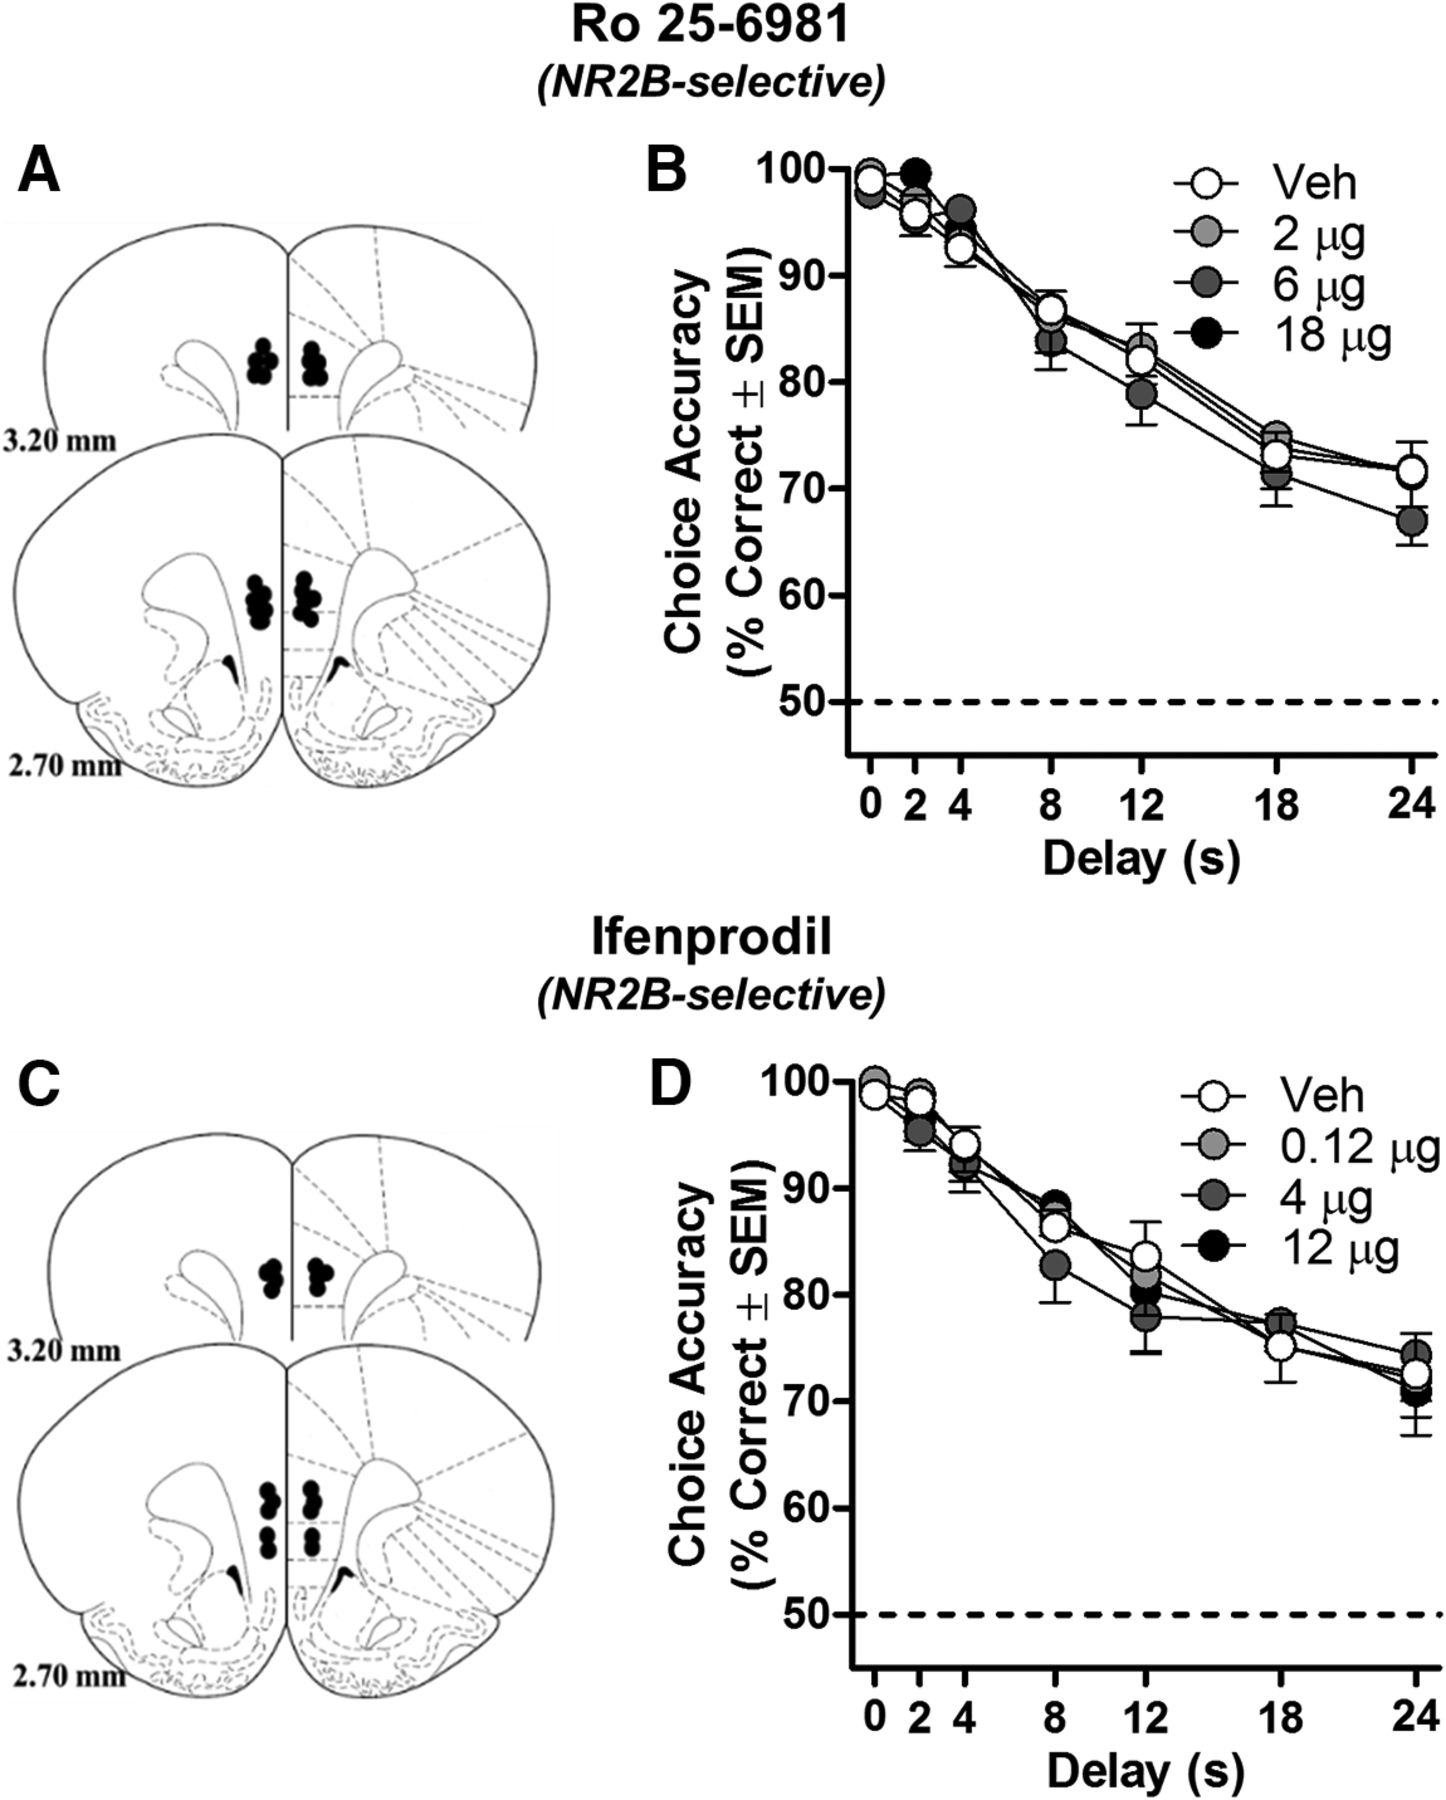 Nr2a Containing Nmdars In The Prefrontal Cortex Are Required For Circuit 555 Timer With Theory Delay Off Download Figure